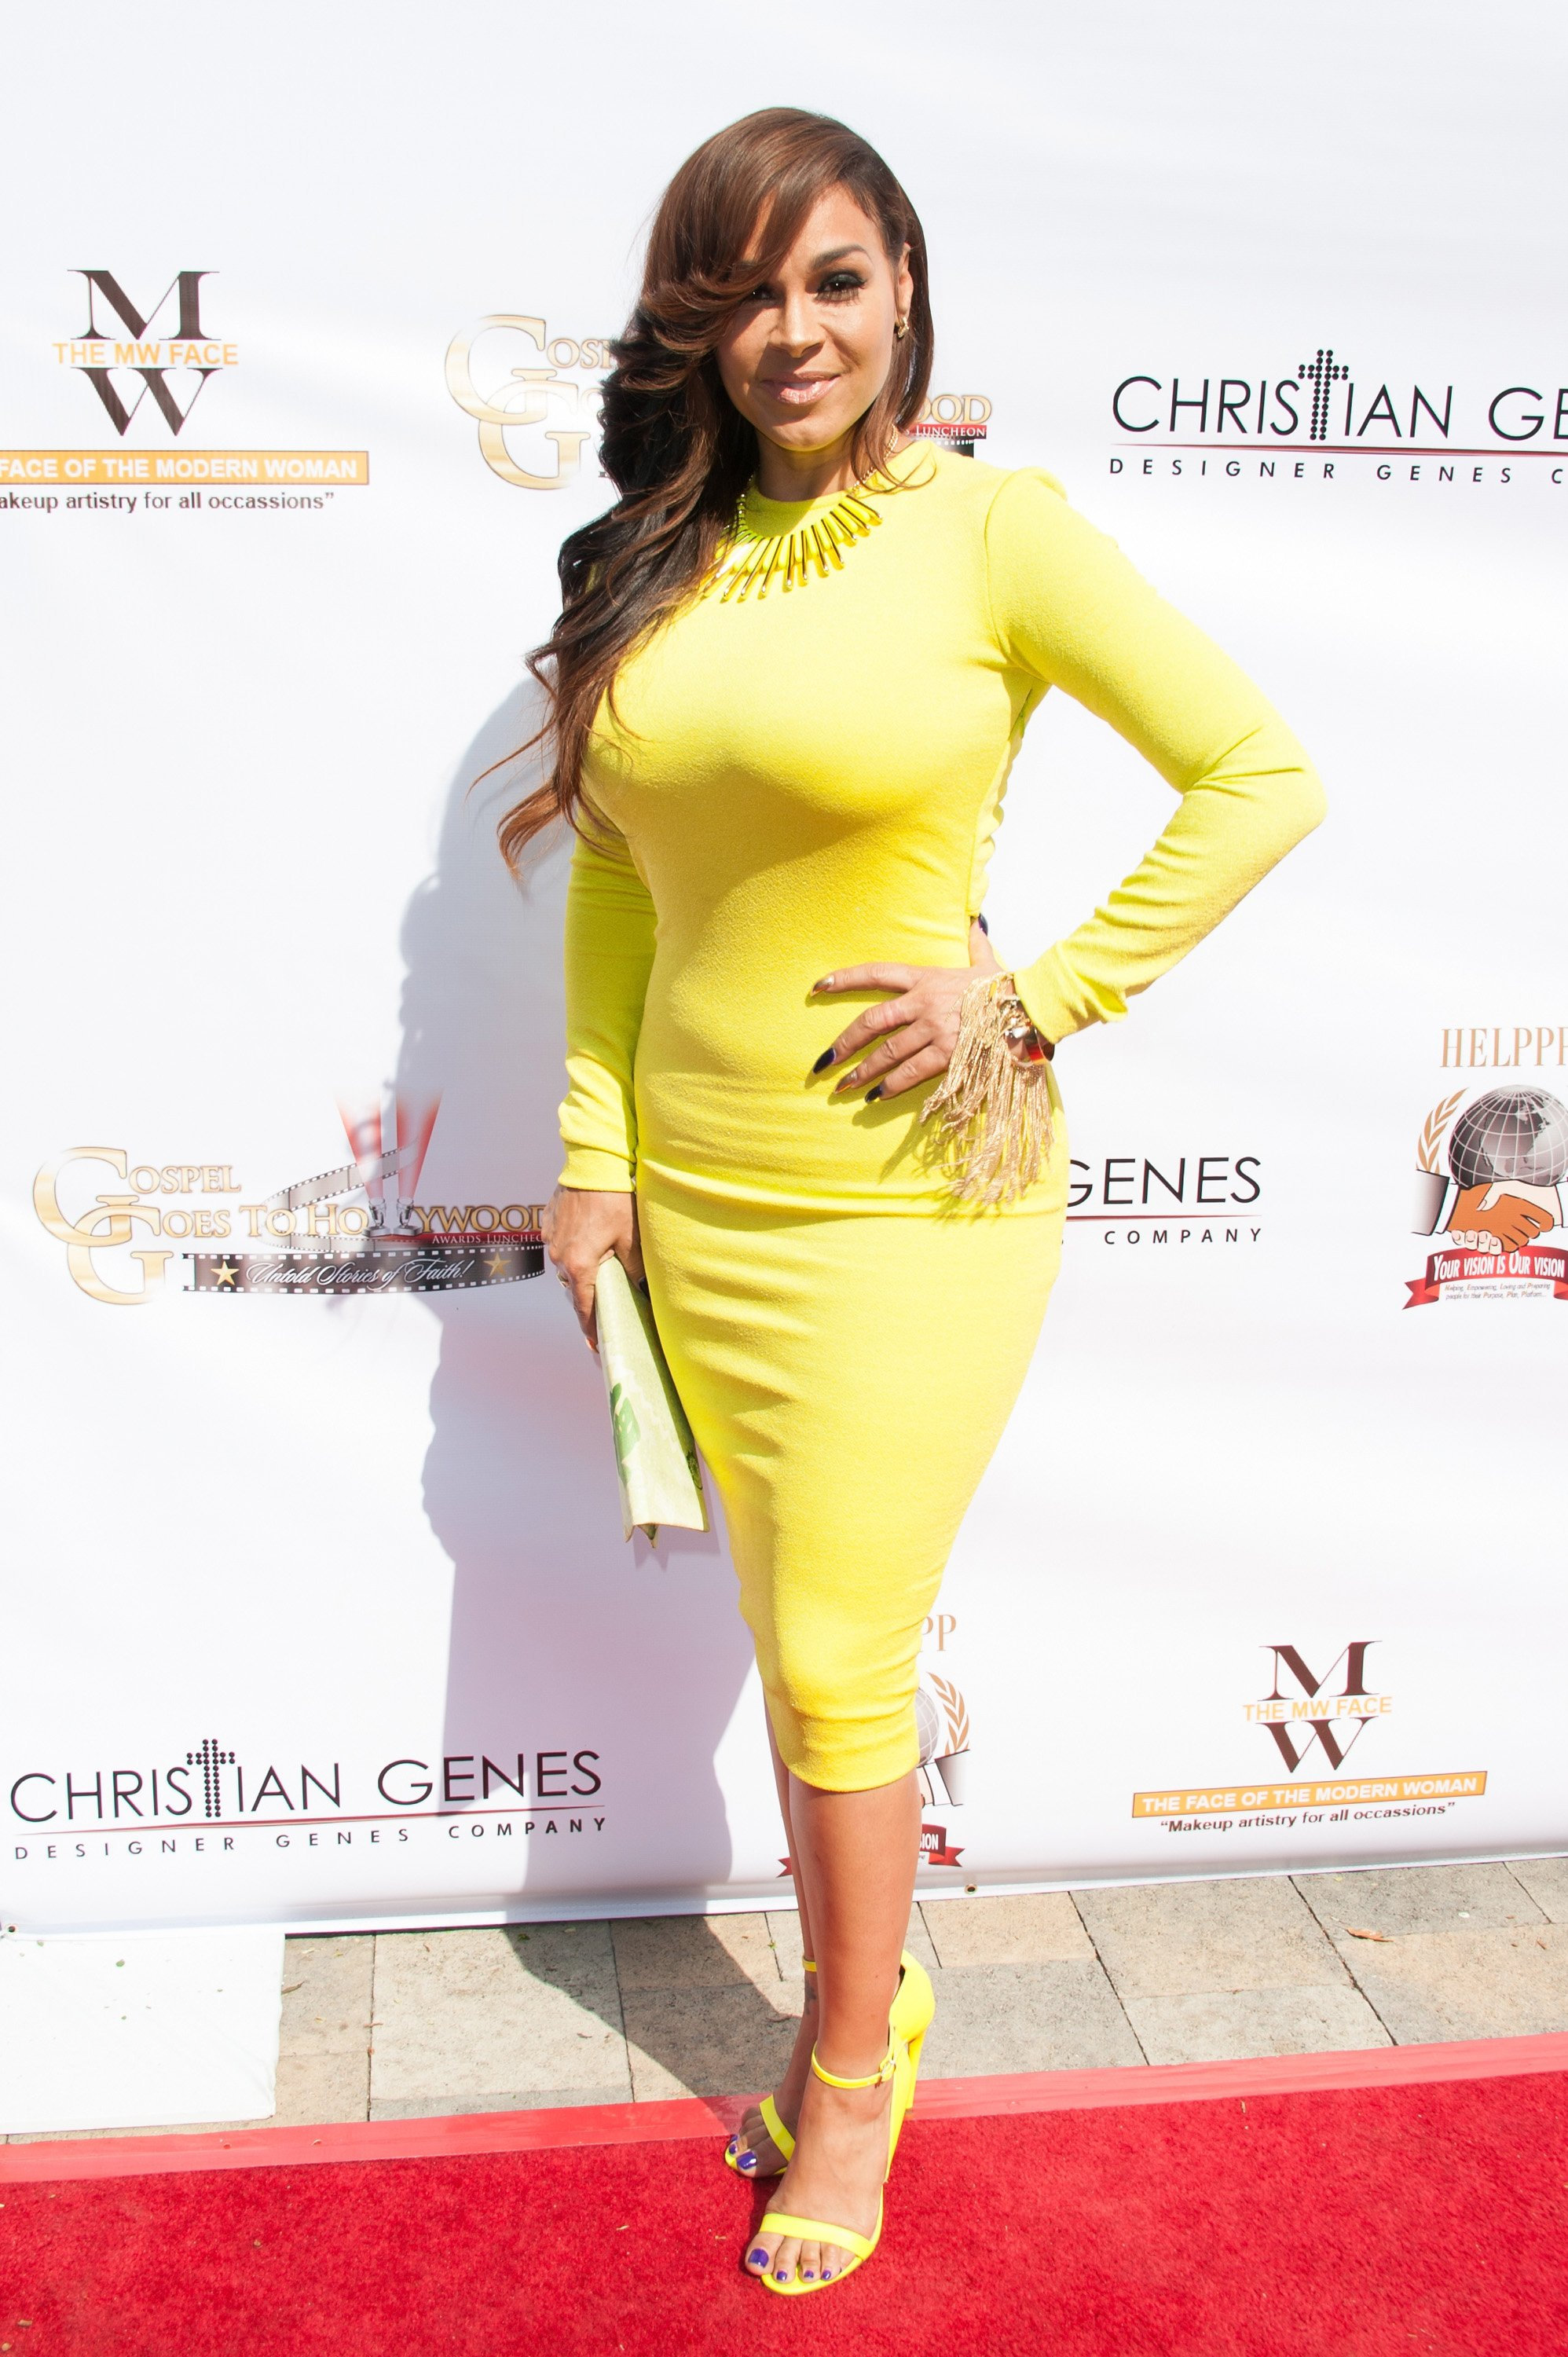 Sheree Zampino at the Gospel Goes To Hollywood event on Feb. 26, 2016 in California | Photo: Getty Images